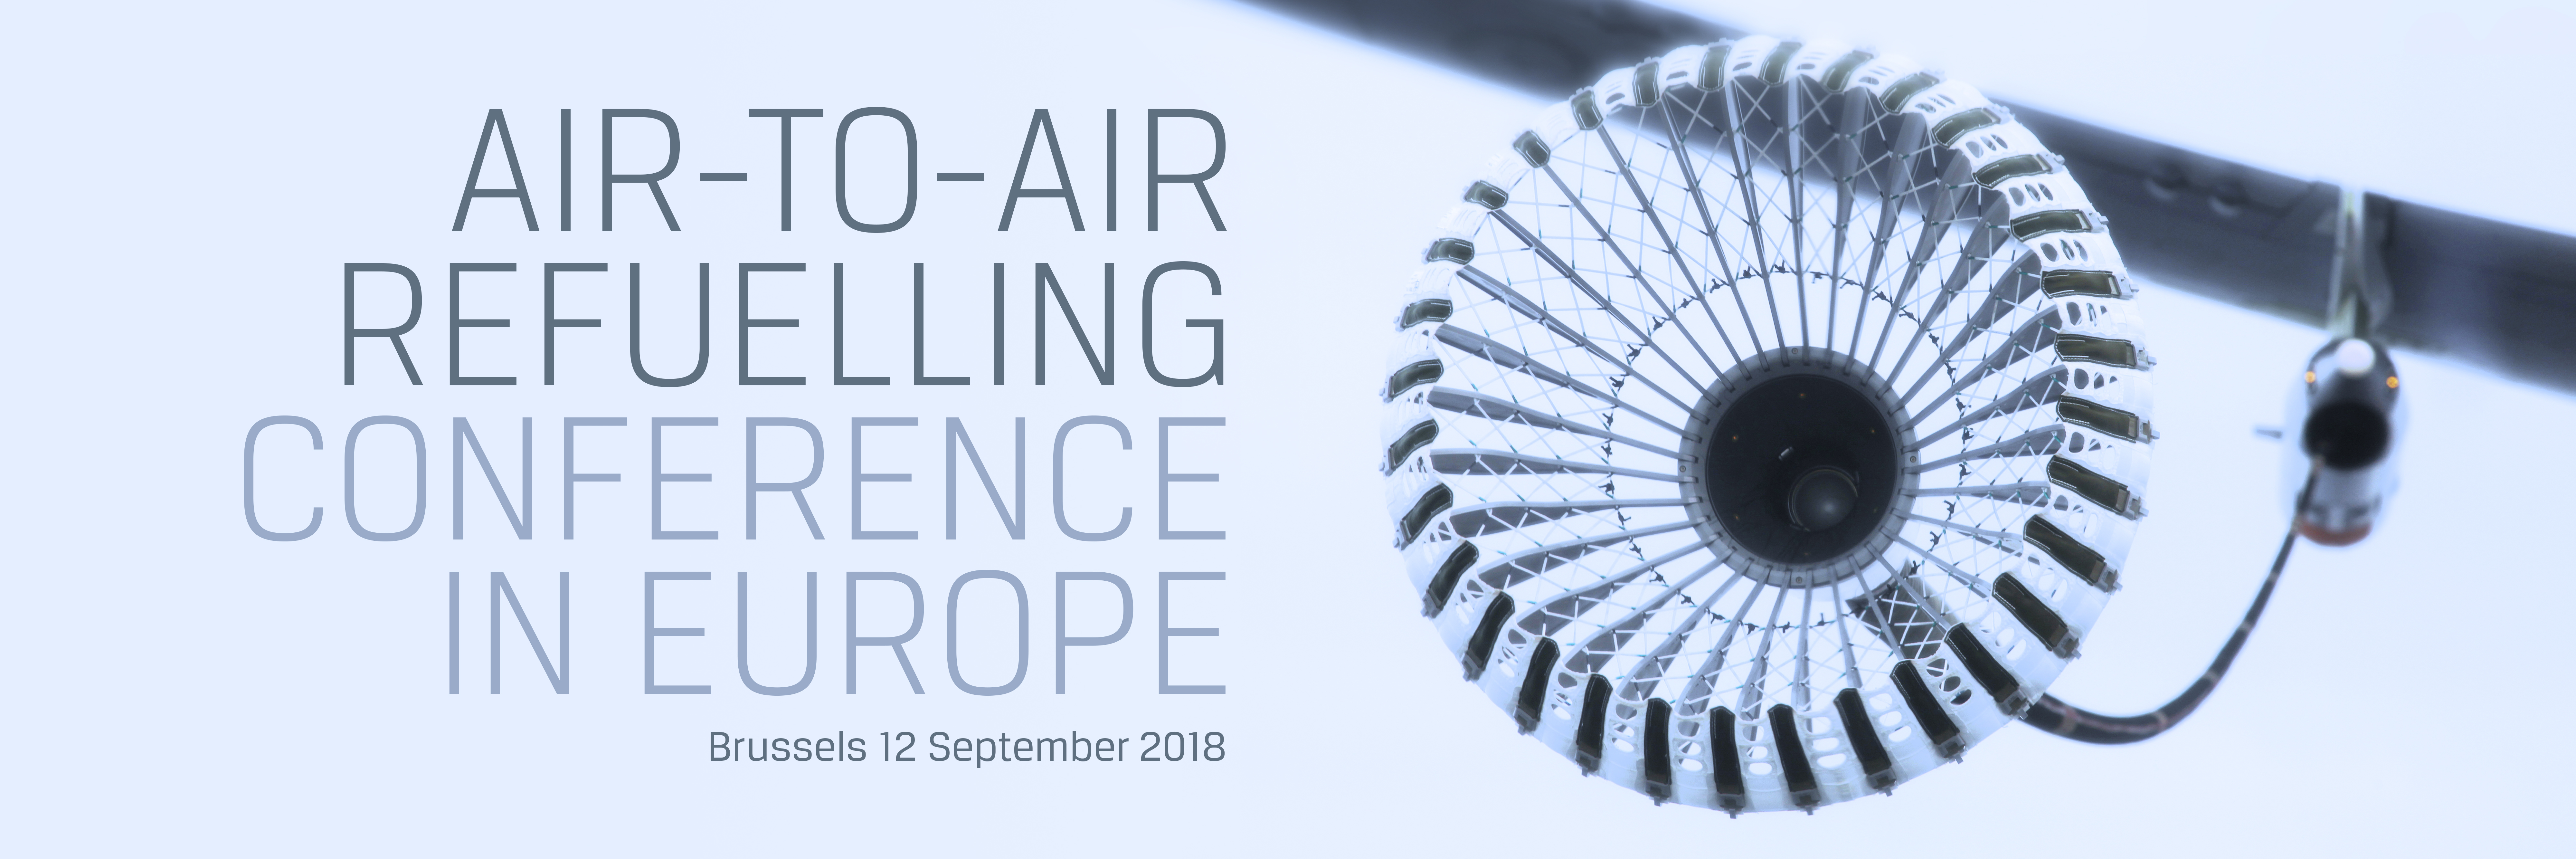 EDA to hold 1st Air-to-Air Refuelling conference in Europe